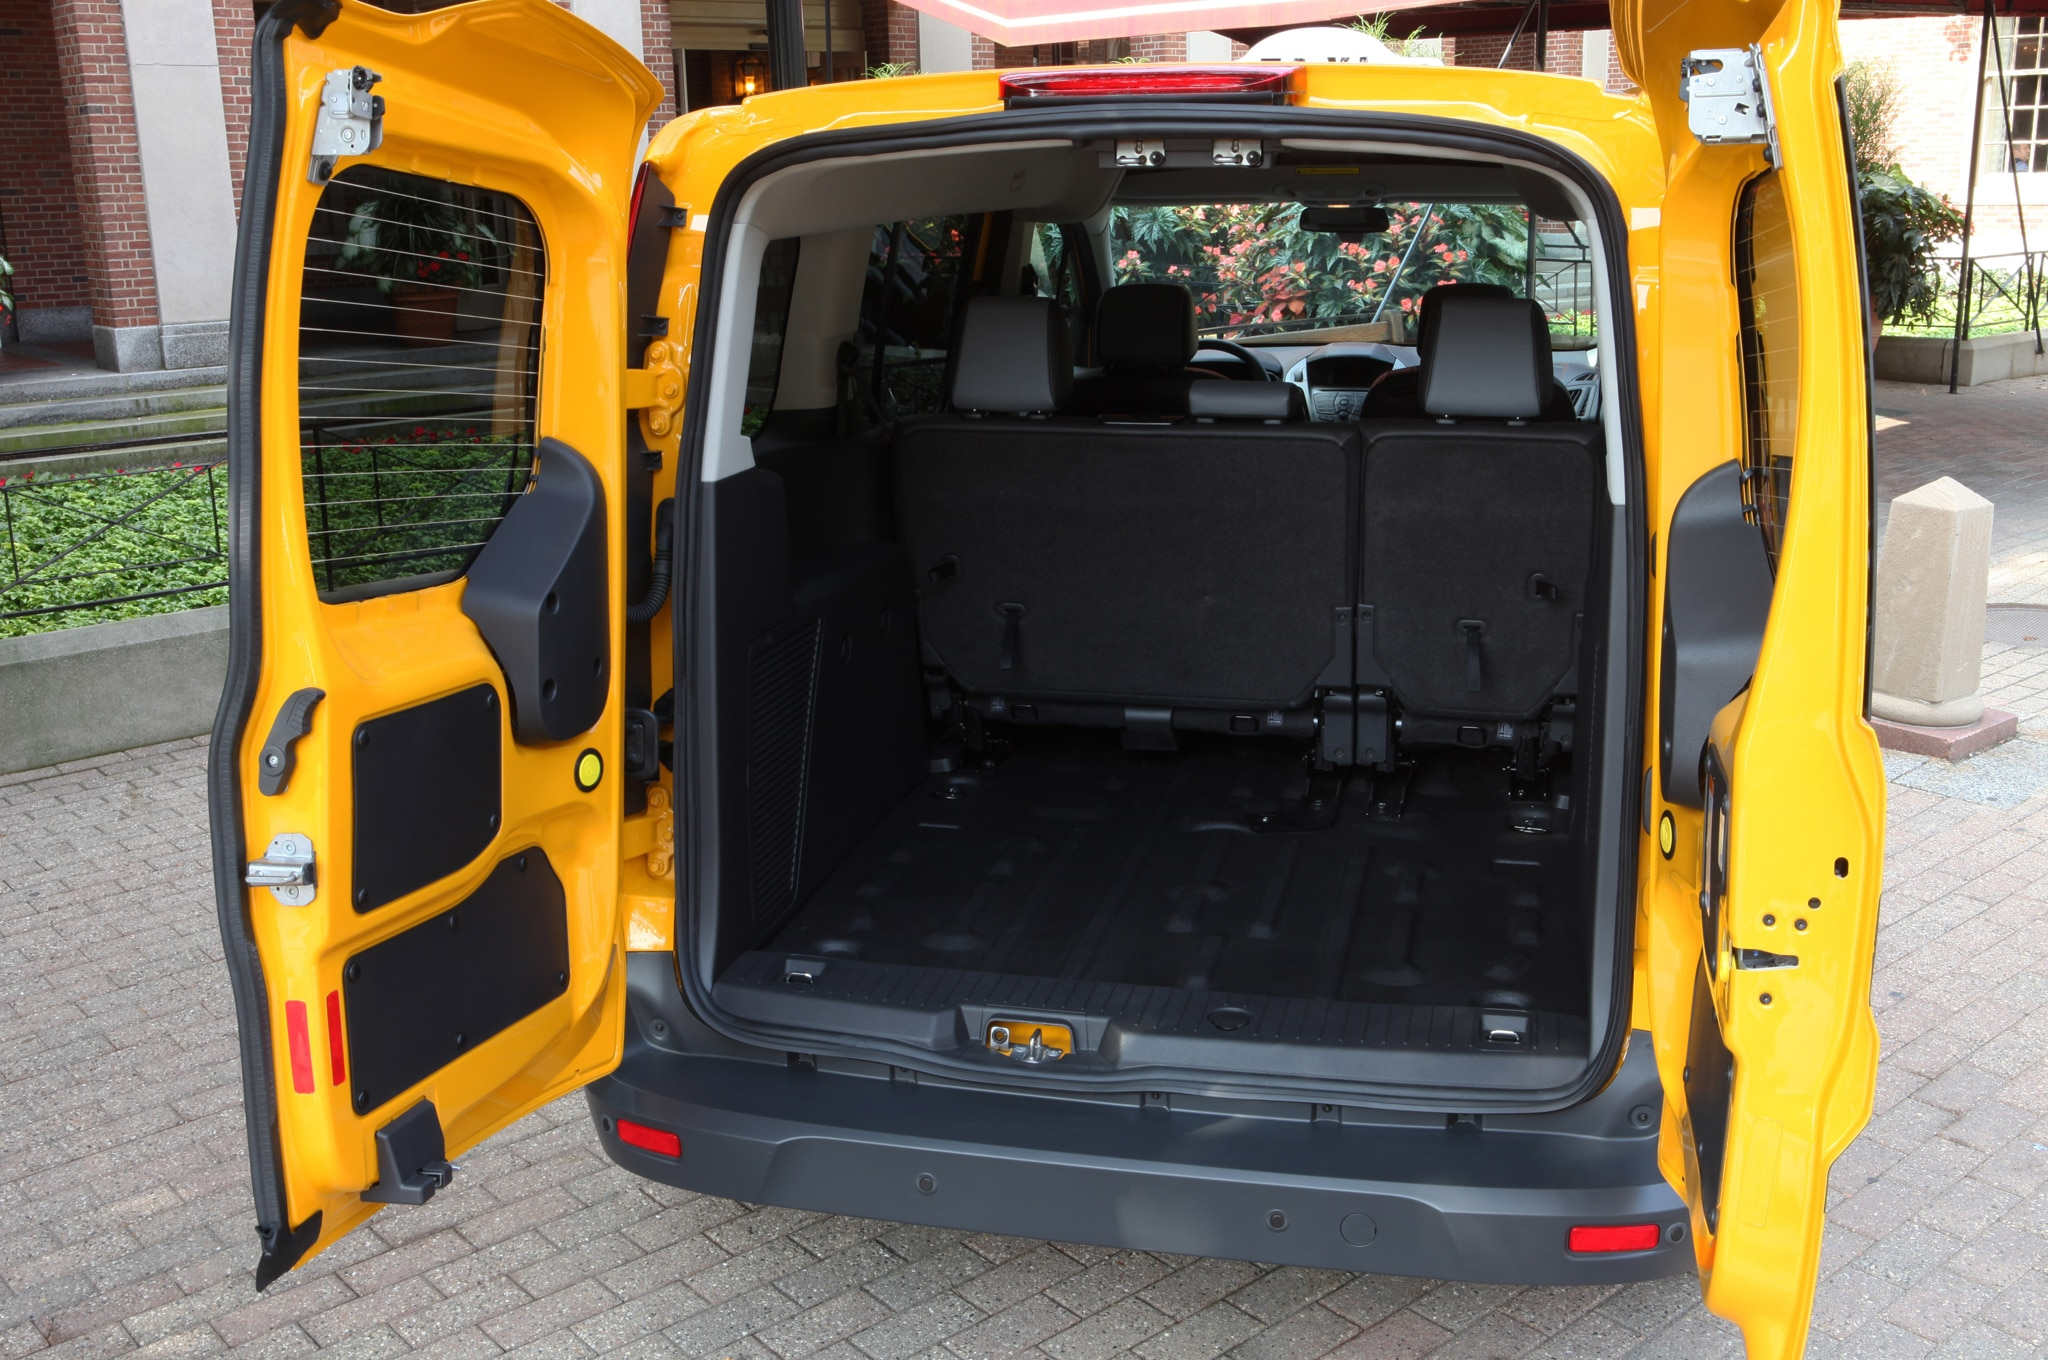 2014 Ford Transit Connect Taxi cargo area 2014 ford transit connect taxi version shown